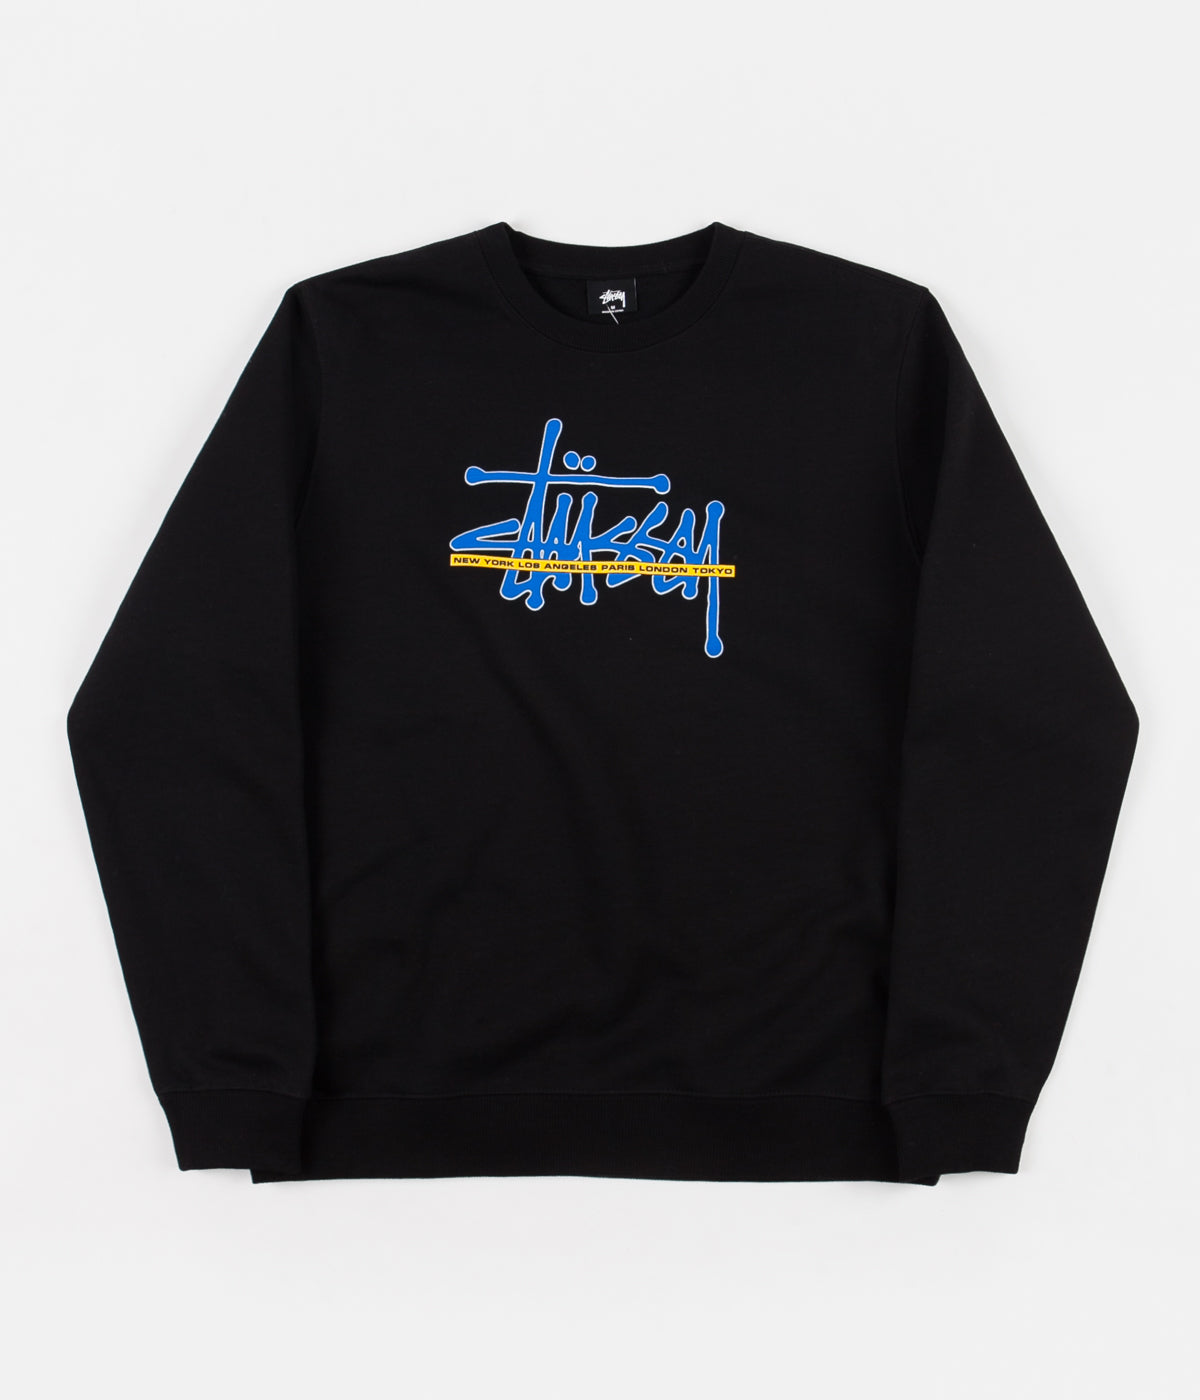 Stussy International Crewneck Sweatshirt - Black